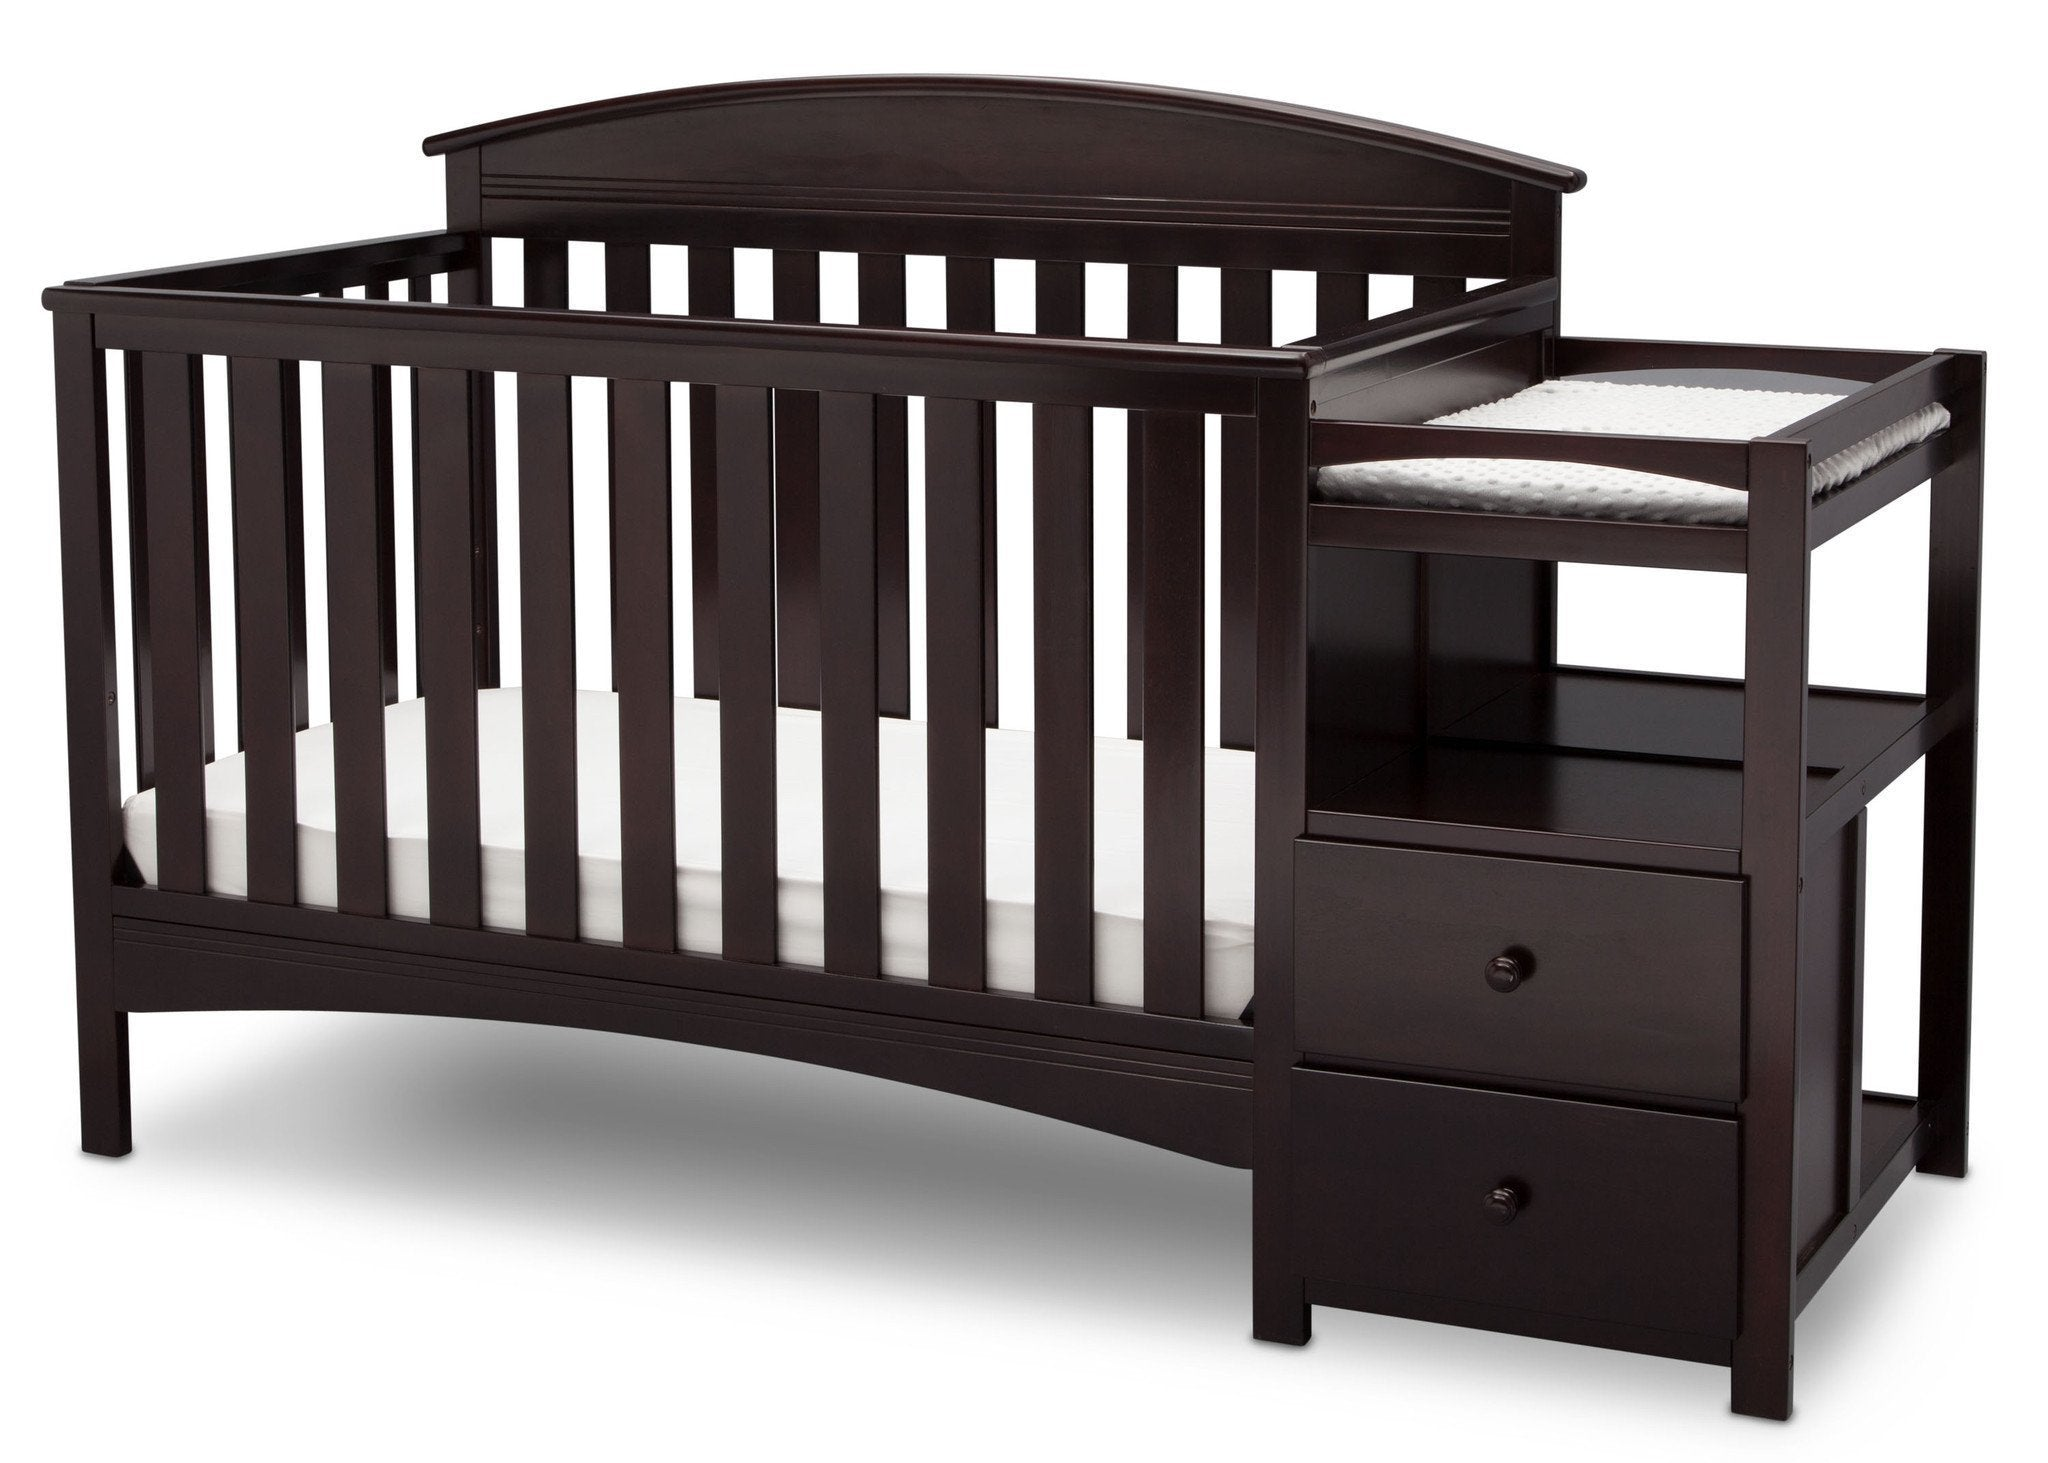 honey table n delta with changing walmart warm ip children attached convertible cribs royal com crib changer